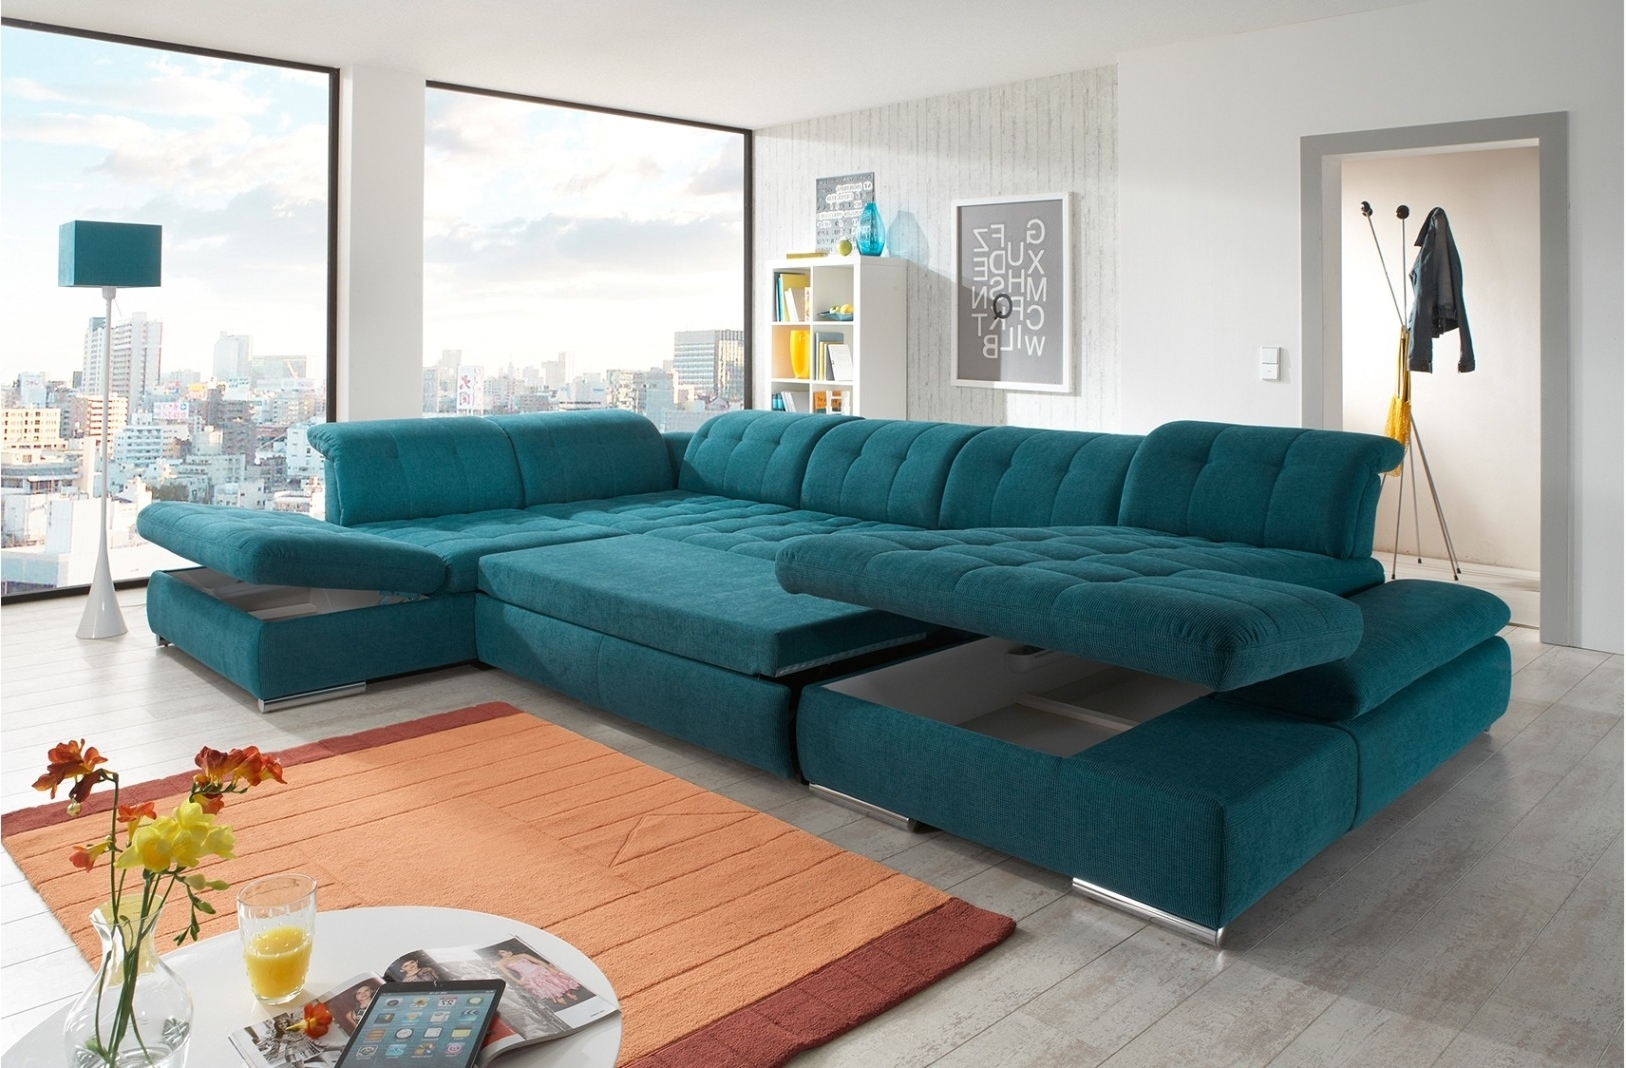 Newest Trinidad And Tobago Sectional Sofas For Alpine Sectional Sofa In Green Fabric (View 10 of 15)